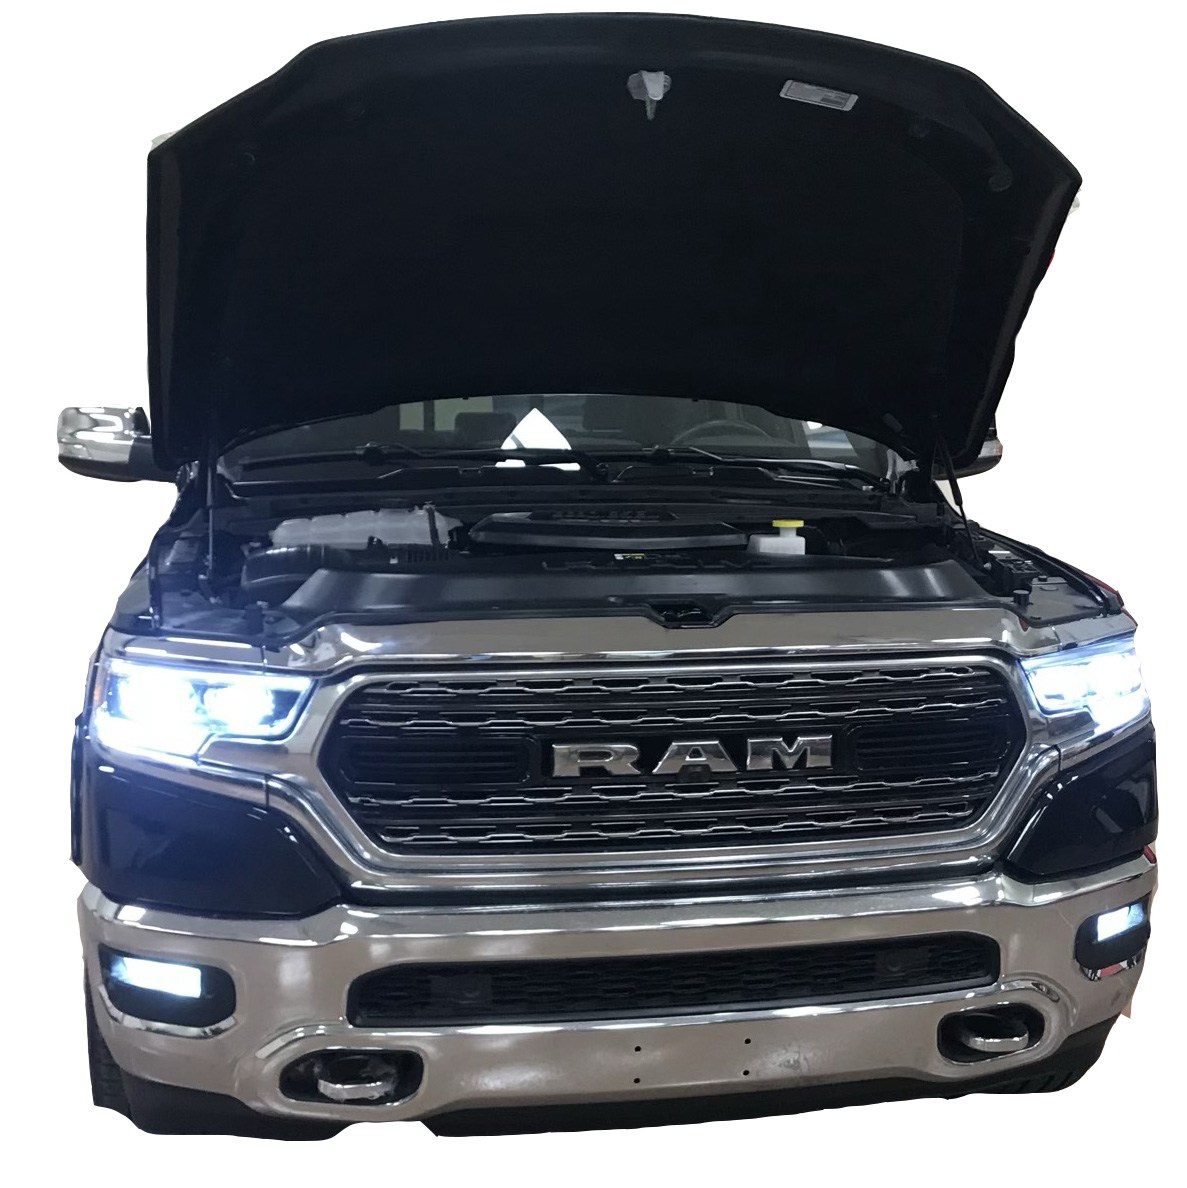 New rams will have a new redesigned engine-ecodiesel-2020-front-view.jpg